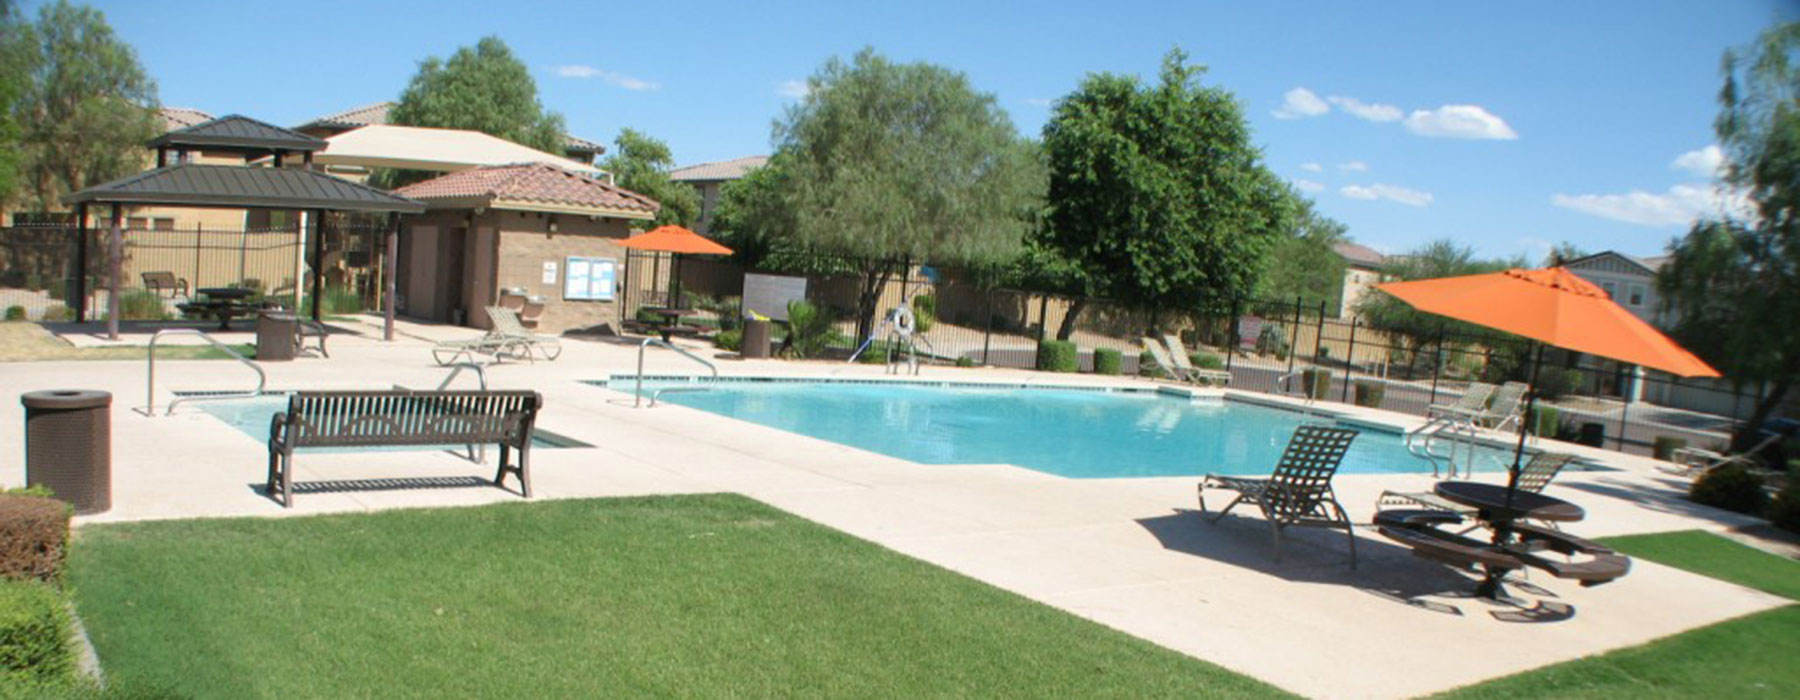 SOLD – 6418 W BARBARA AVE Glendale, AZ 85302